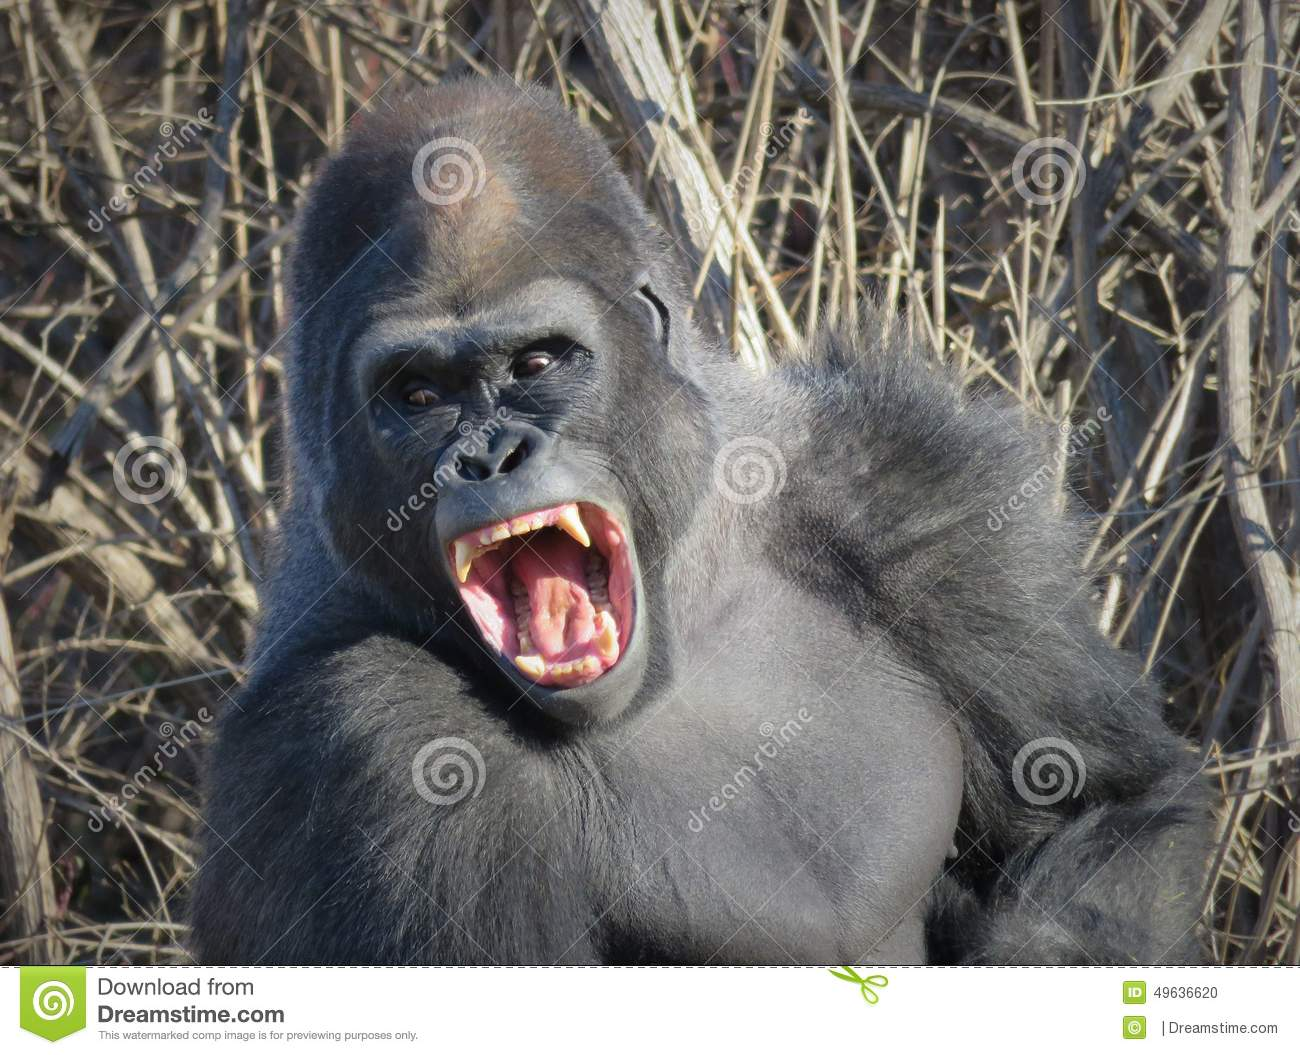 Gorilla Yawning Like King Kong! Stock Photo - Image: 49636620